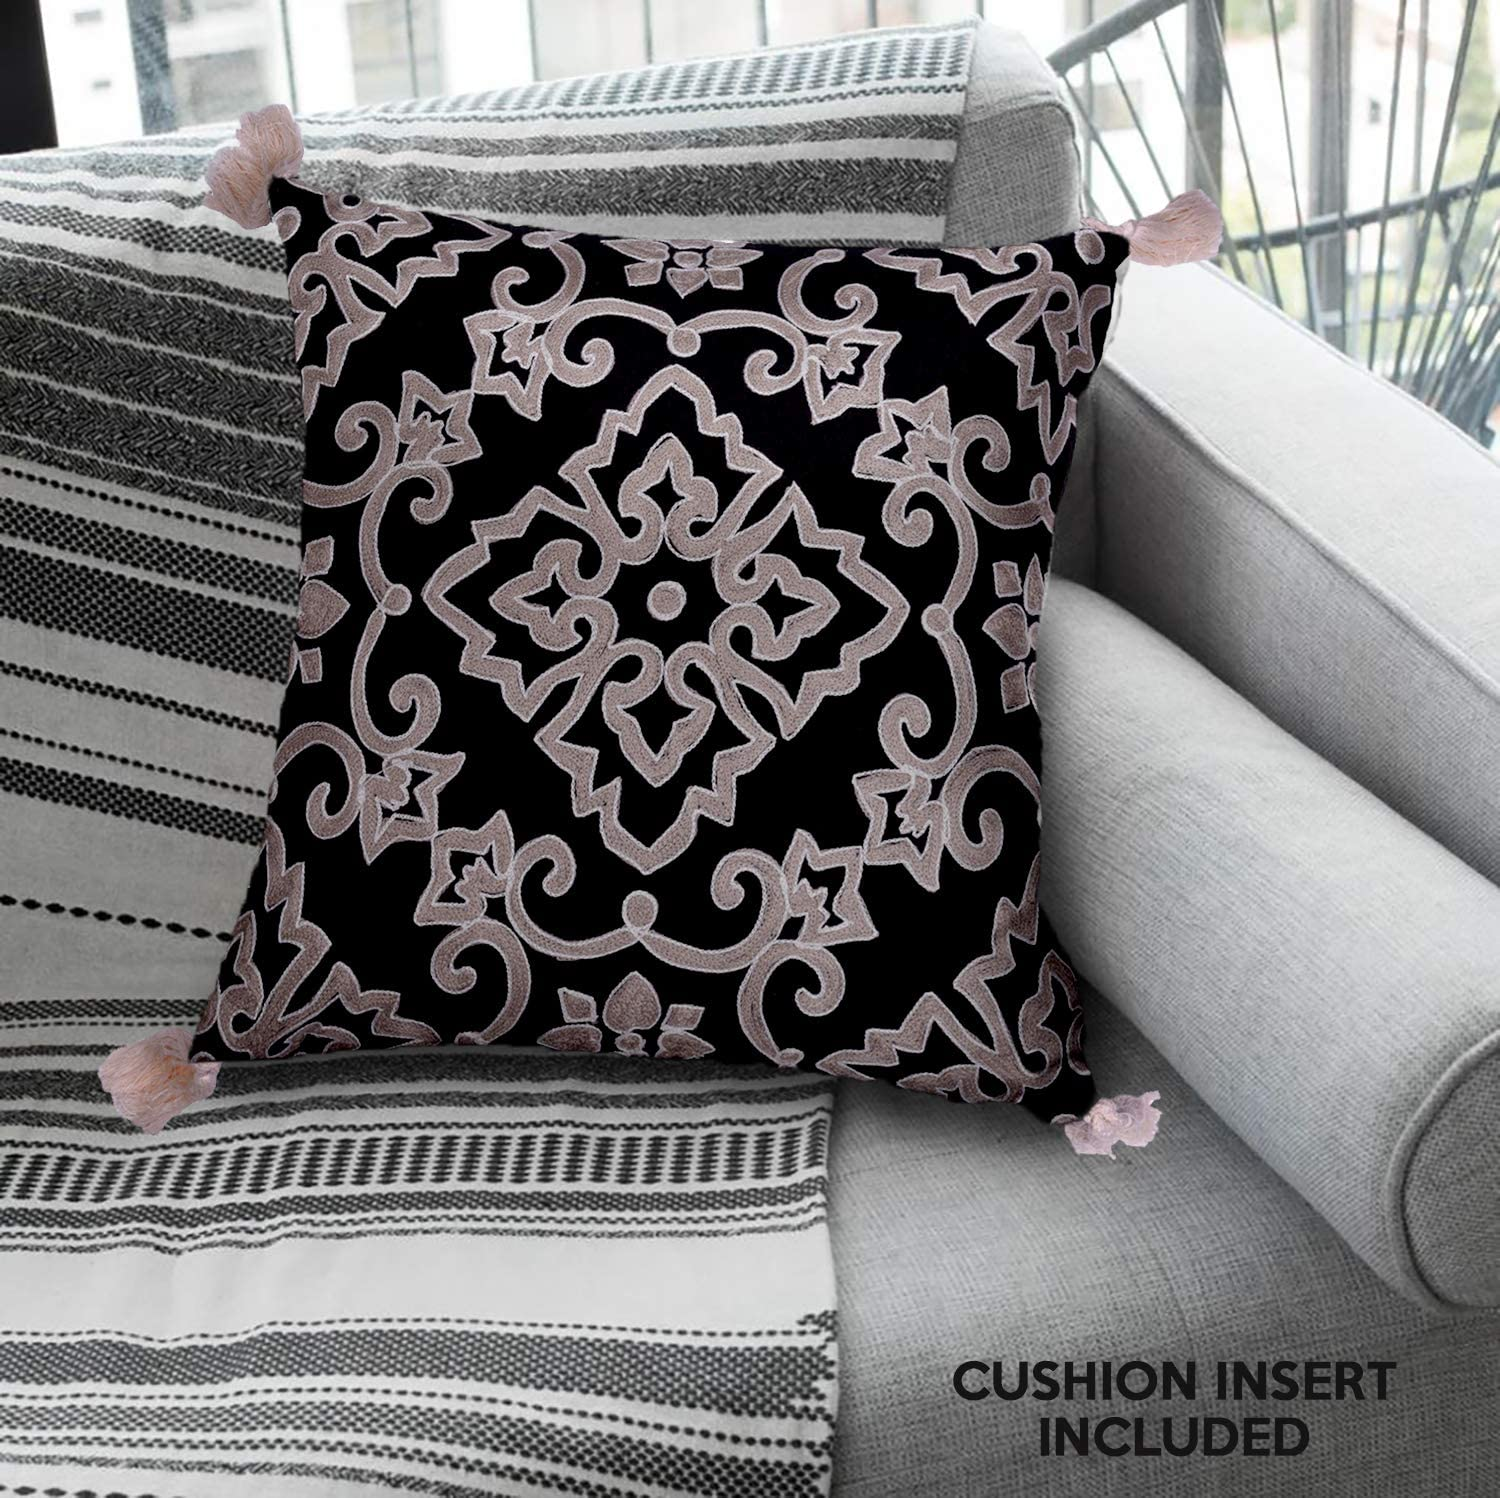 Decozen Decorative Throw Pillow 18x18 in with Insert in 1 Set Embroidered Traditional Pattern for Couch Sofa Bed Living Room Bedroom Indoor Patio